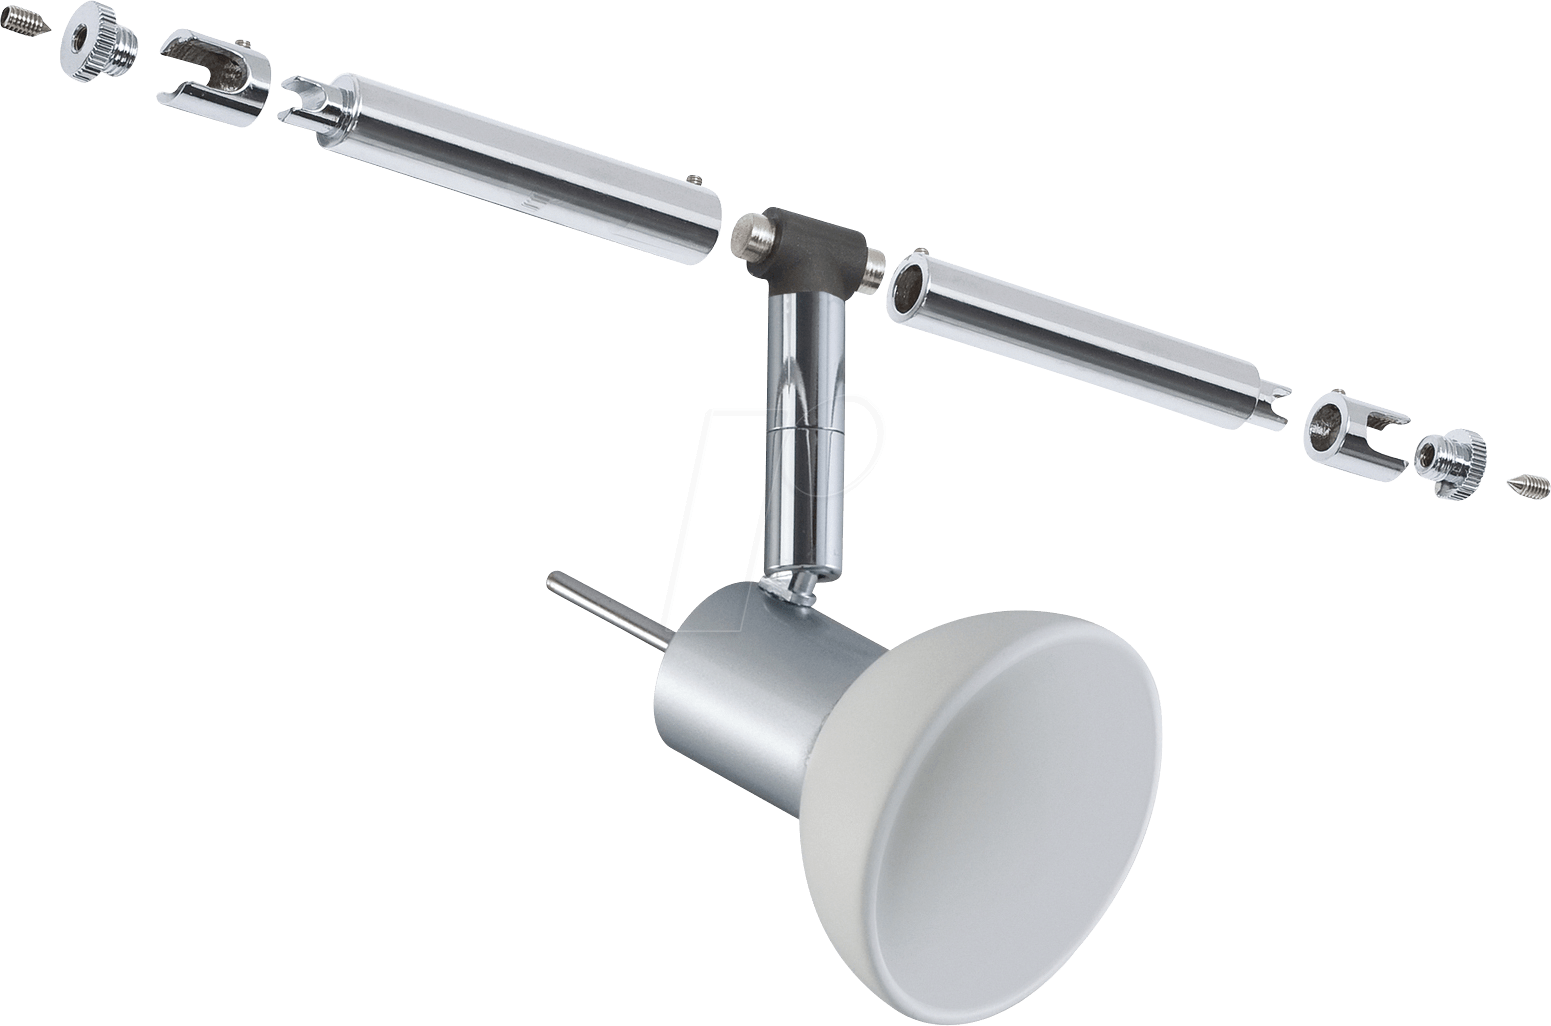 track lighting without wiring. Wire System Spot Sheela Max 1x10W GU5.3 PAULMANN 94131 Track Lighting Without Wiring A